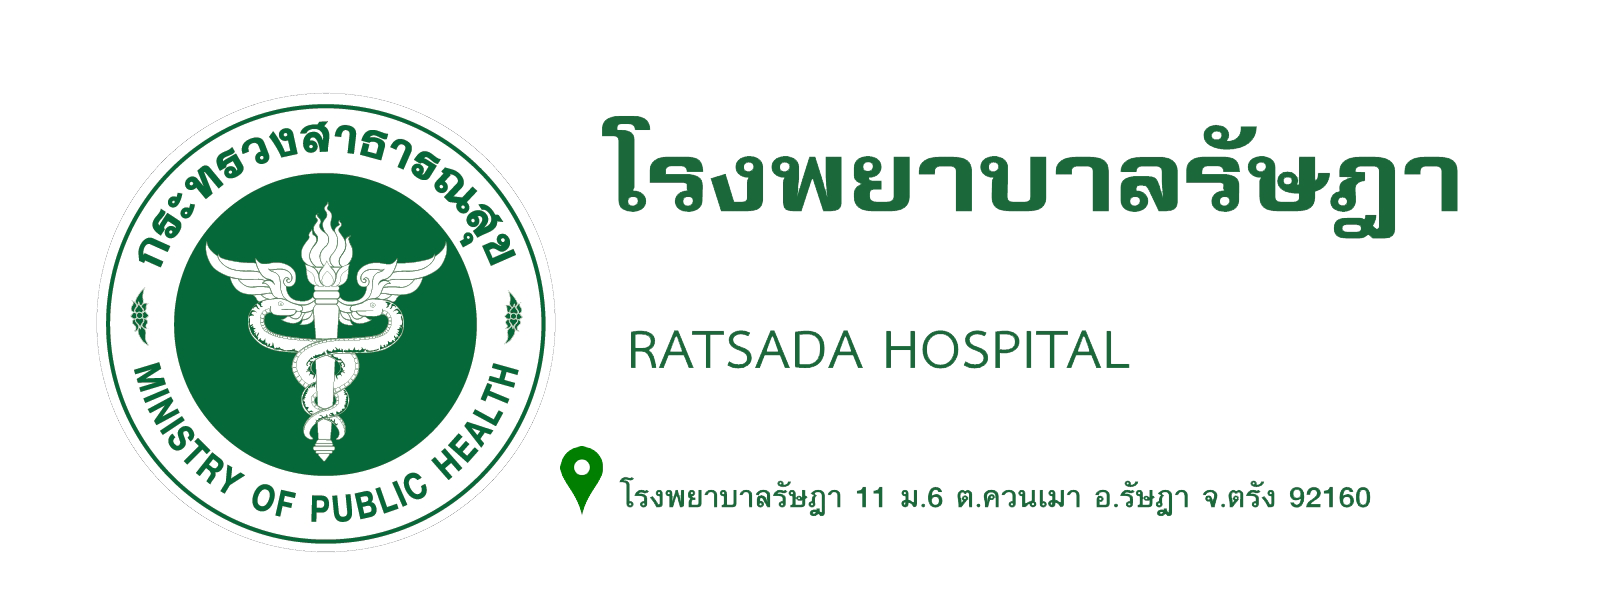 www.rsdhosp.go.th